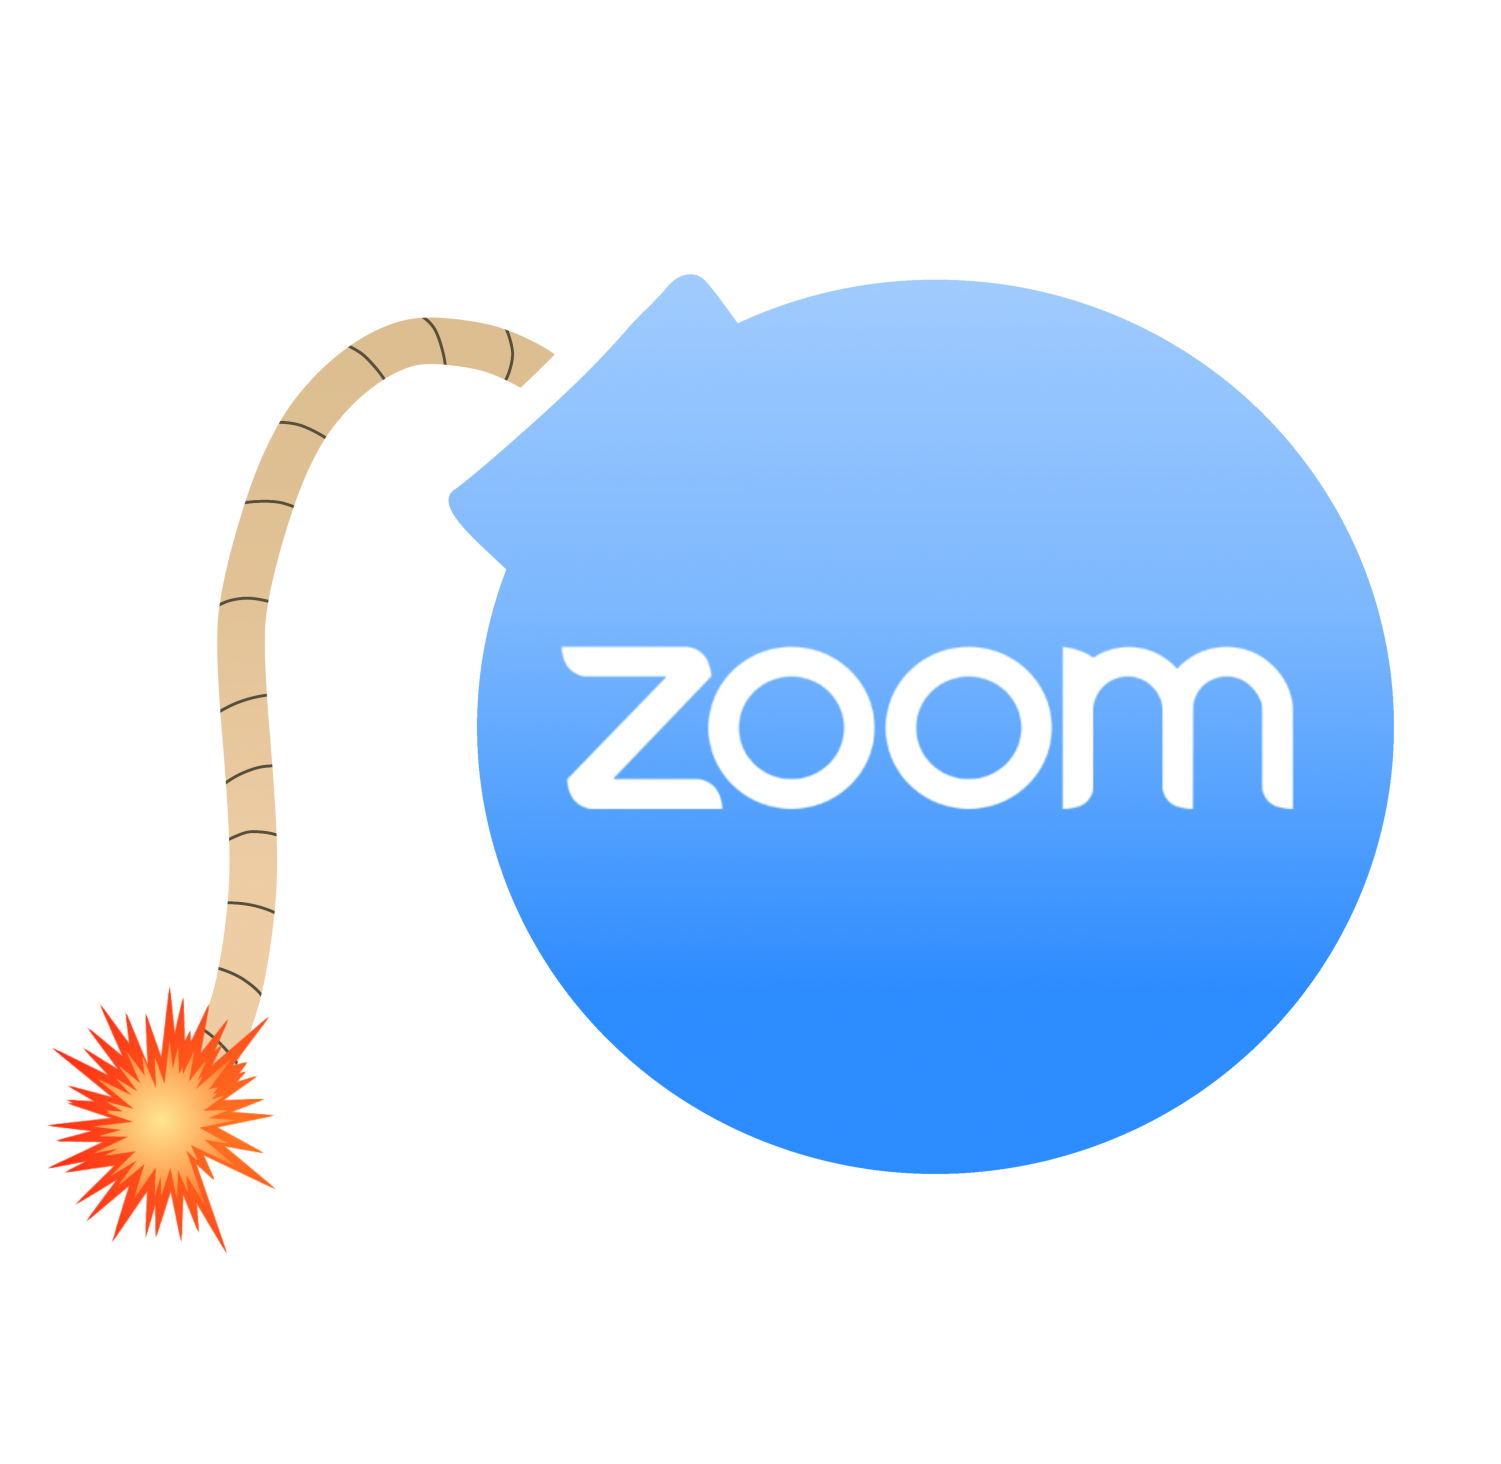 Zoombombing disrupts first week of Extended eSchool